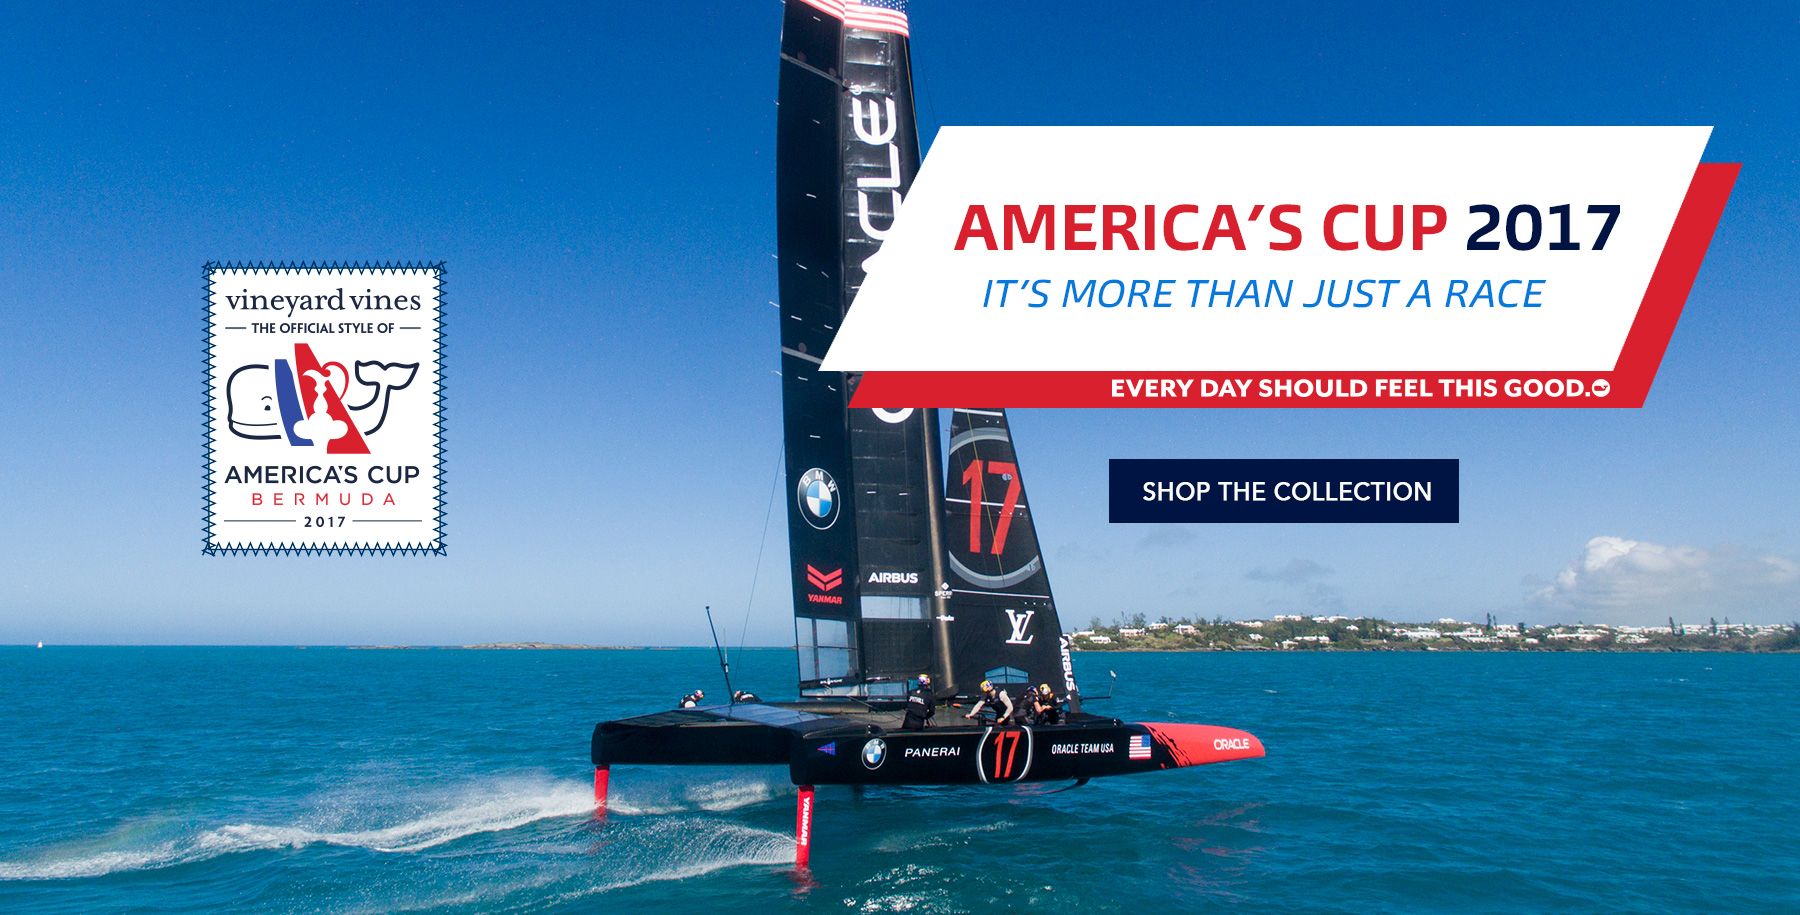 America's Cup 2017. It's more than just a race. Every day should feel this good. Shop the collection.